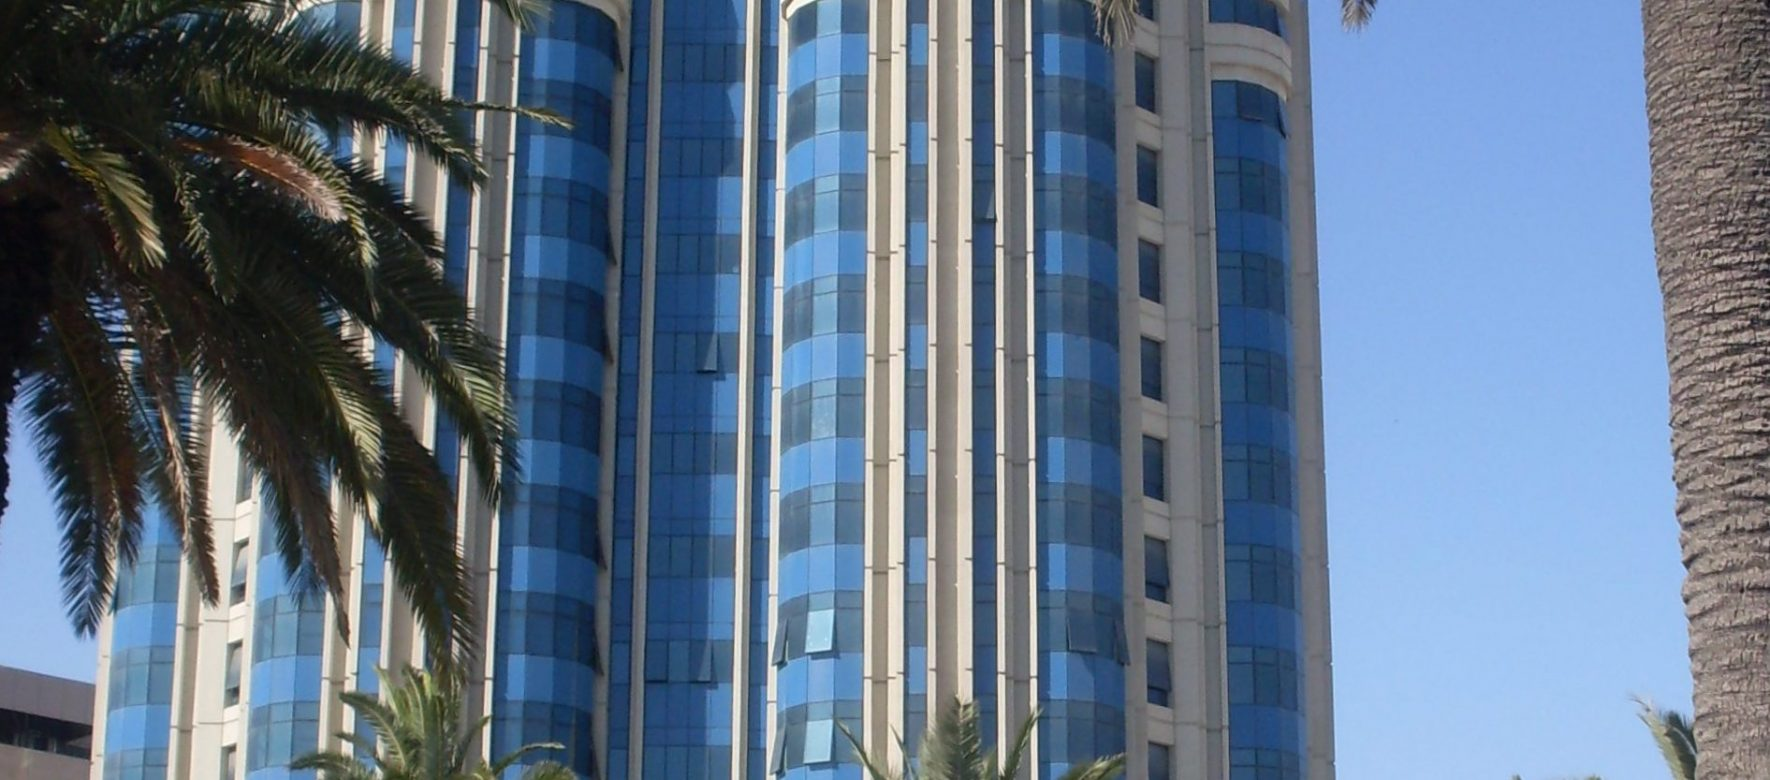 Tunisian banks are increasing their share capital 1